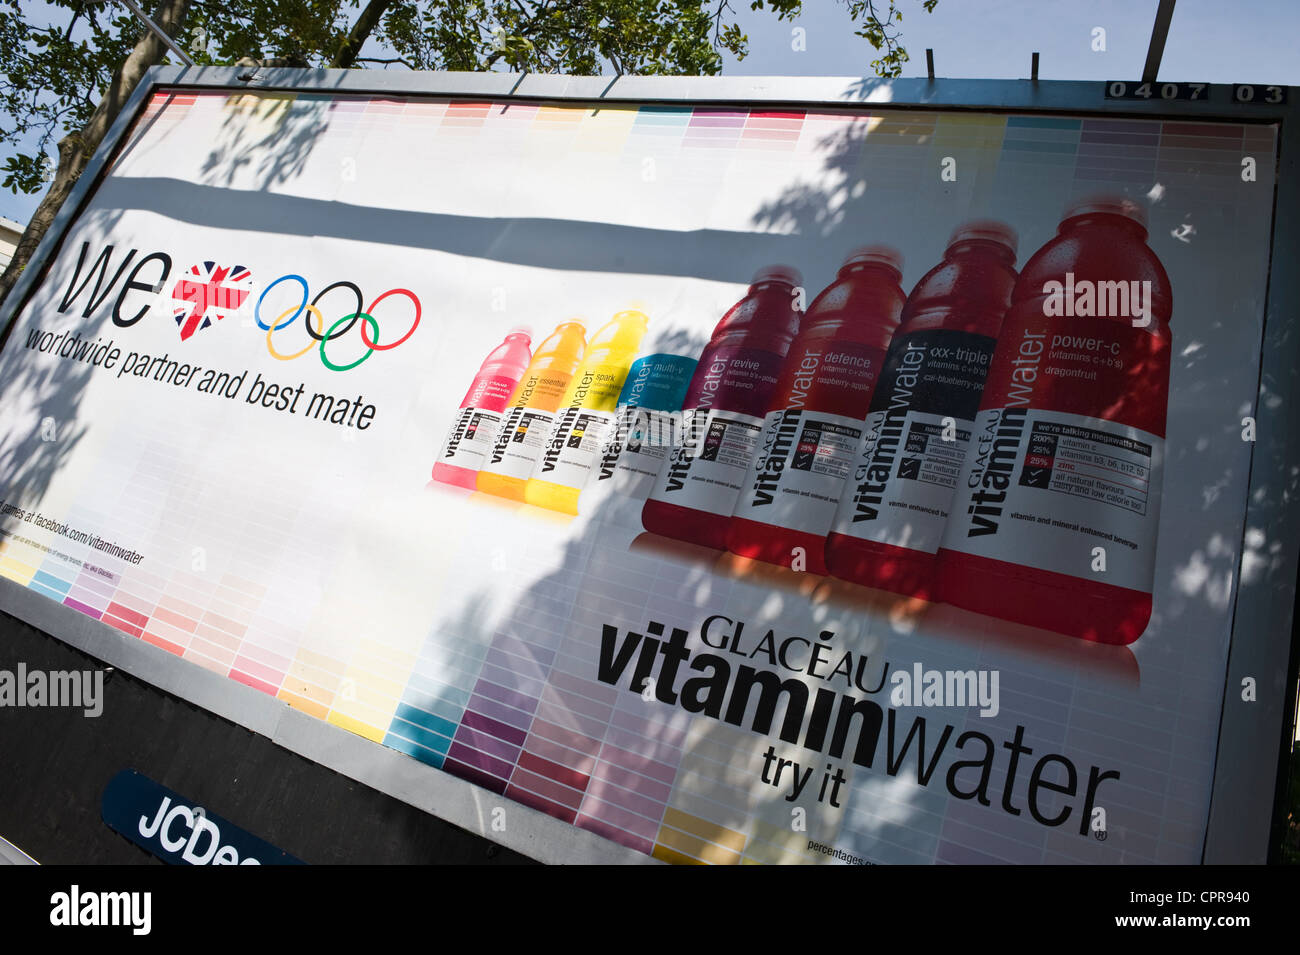 JCDecaux advertising billboard for GLACEAU VITAMIN WATER Olympic partner in Newport South Wales UK - Stock Image